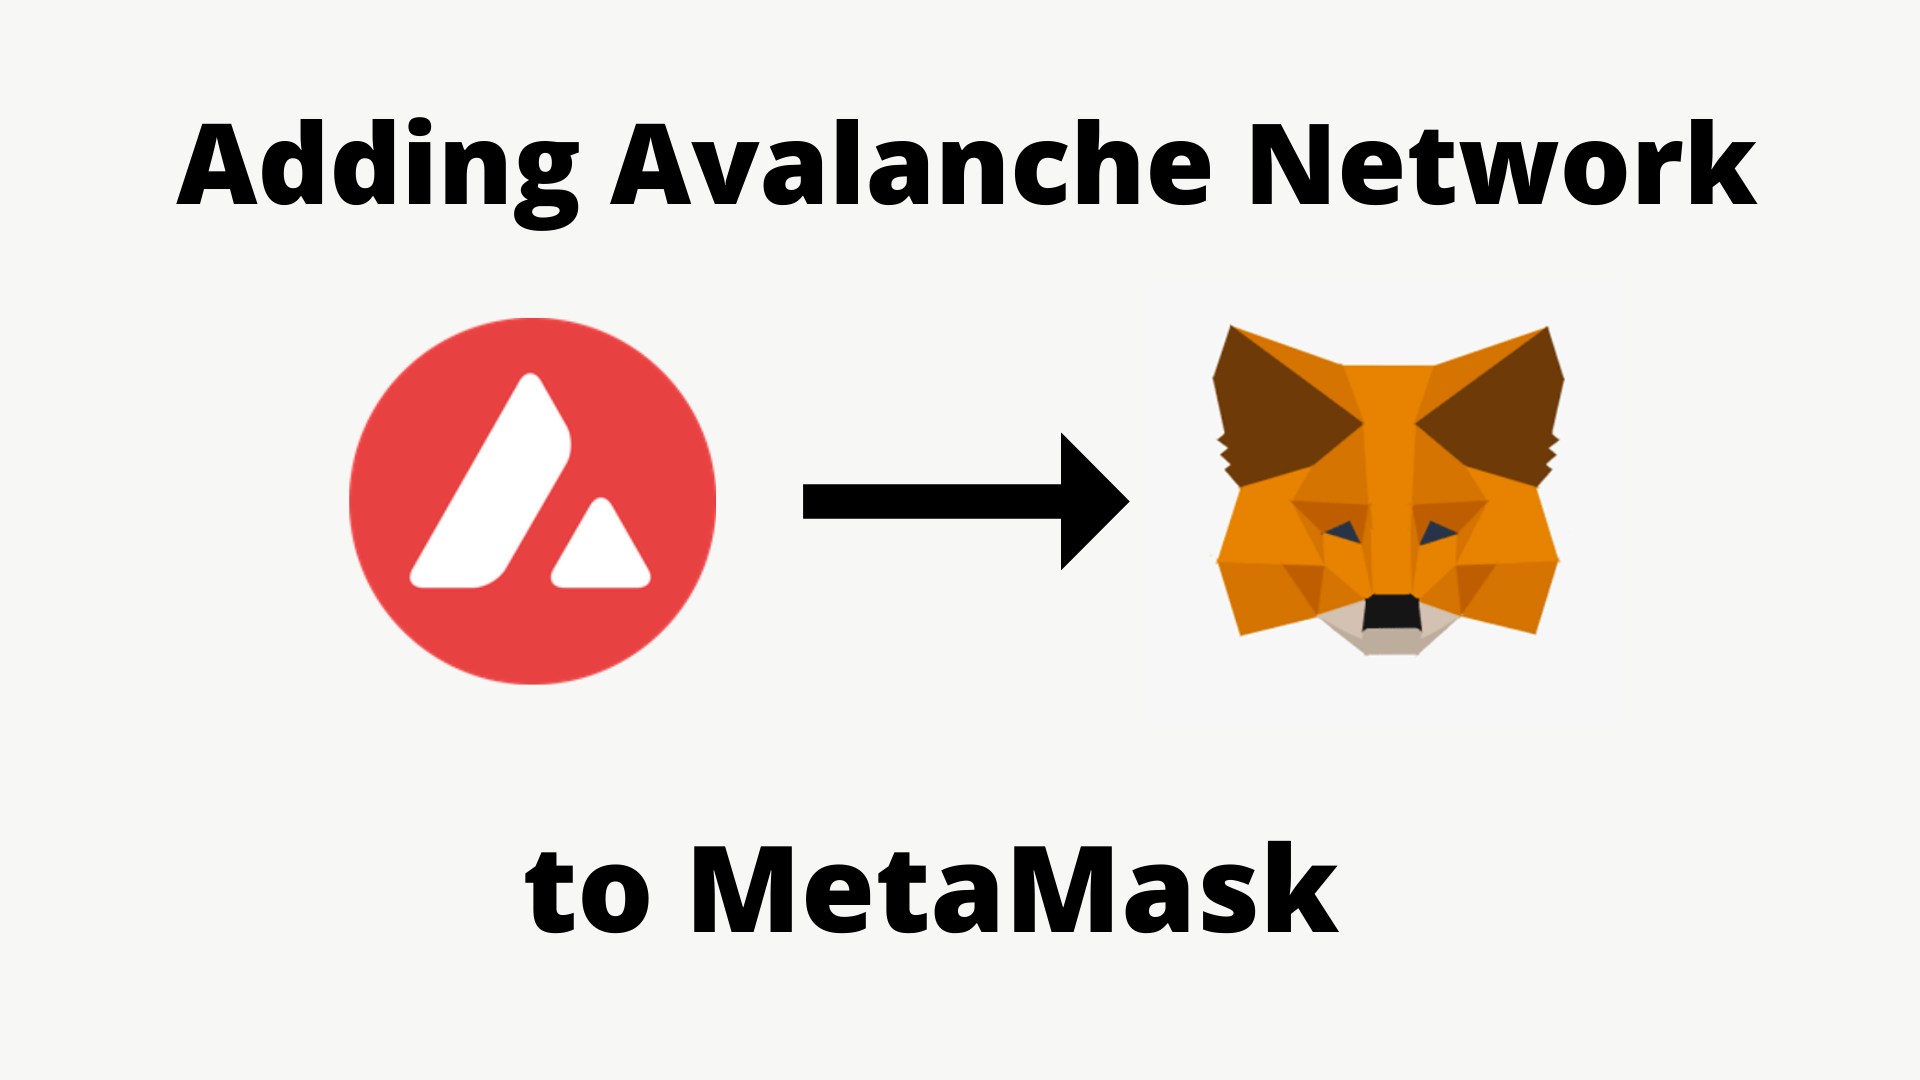 How to Add Avalanche Network to MetaMask